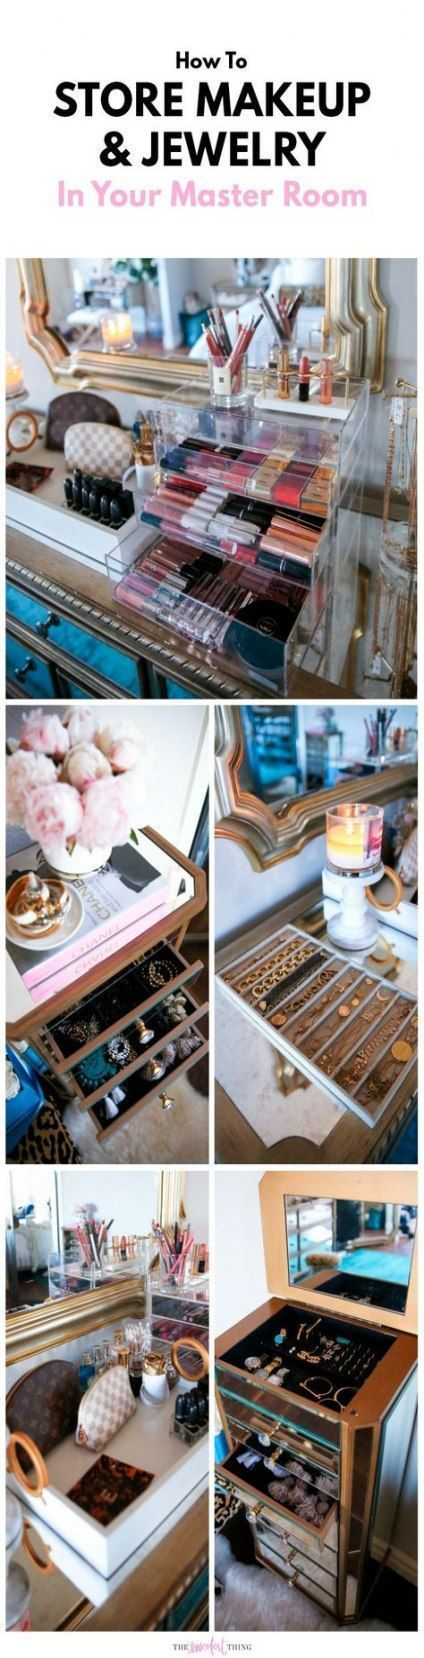 Trendy Closet Organization Schmuck Make-up Aufbewahrung 23 Ideen#designe #design…